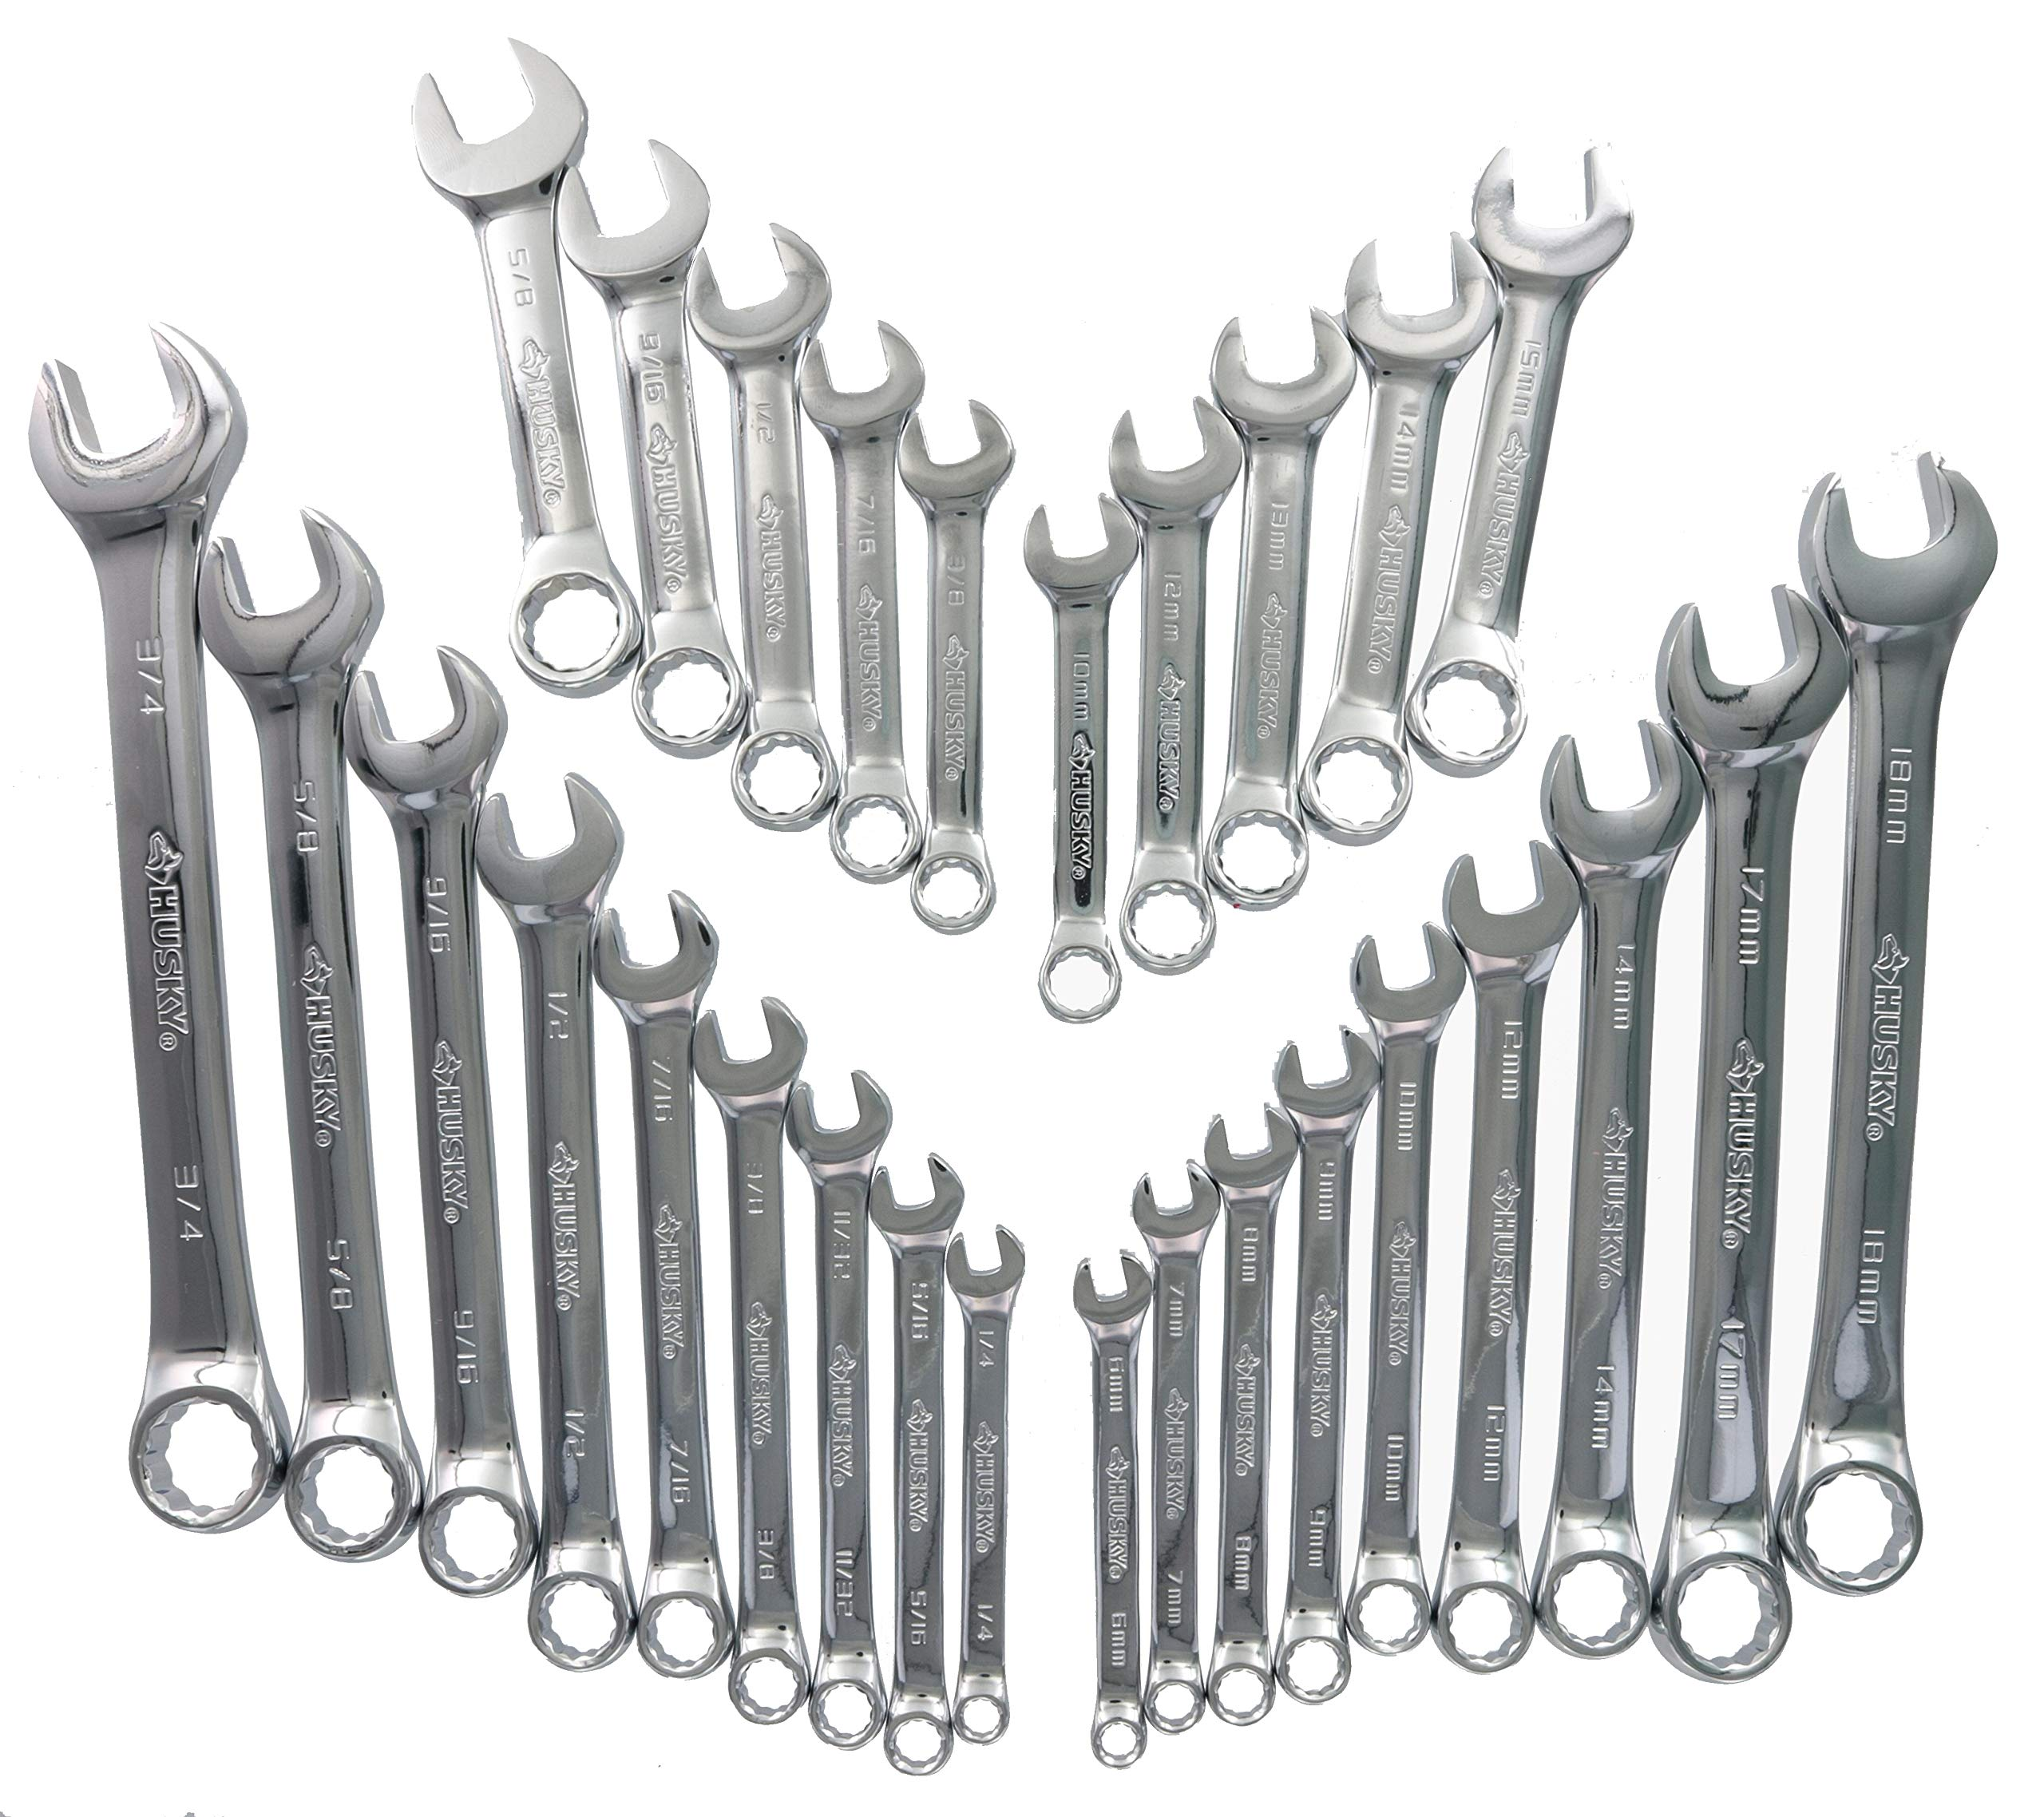 Husky 28CW002NC 28-Piece SAE and Metric Combination Wrench Set and Plastic Labeled Storage Case by Husky